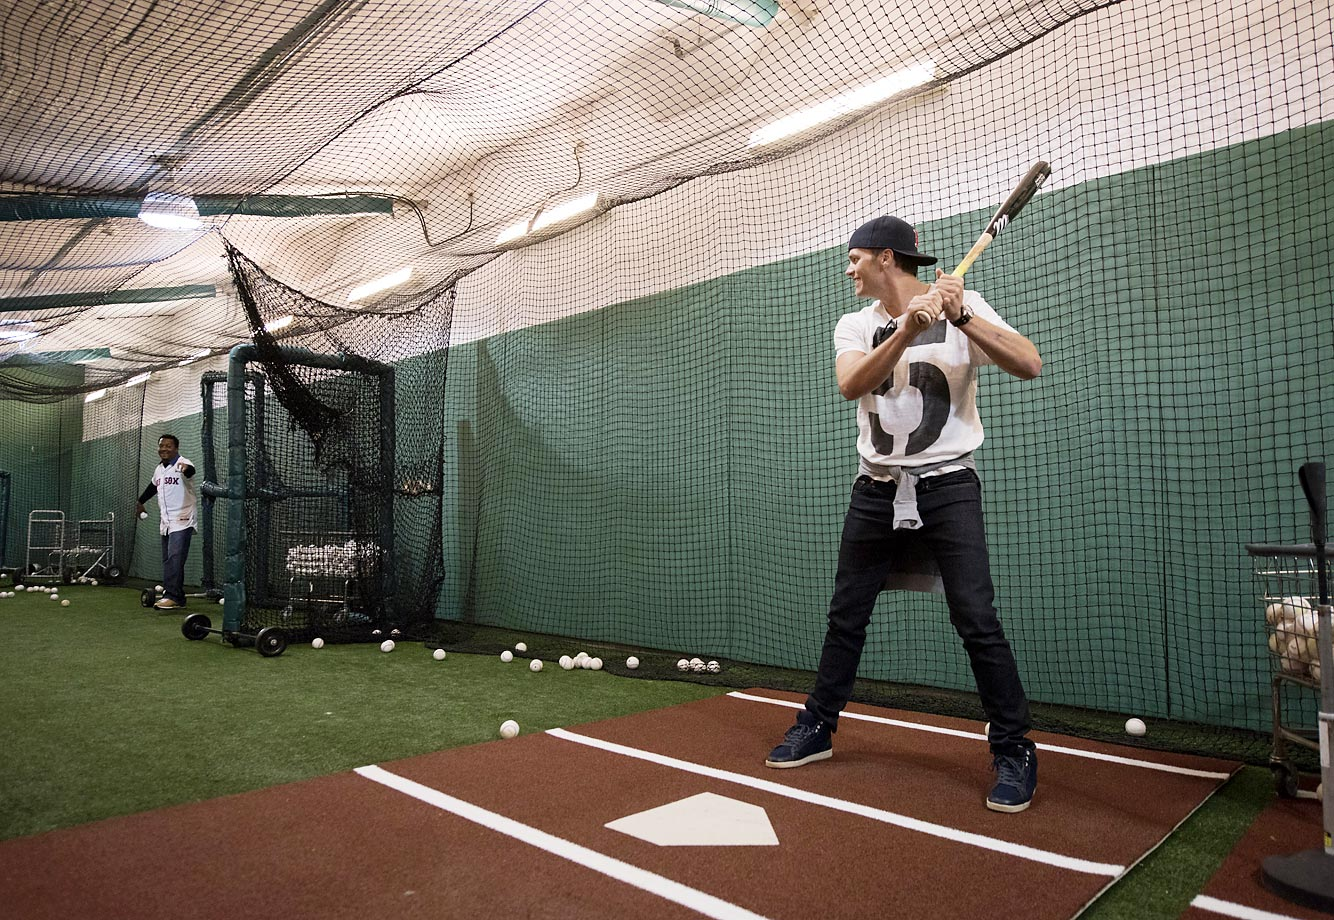 Tom Brady takes batting practice with Pedro Martinez on Opening Day at Fenway.